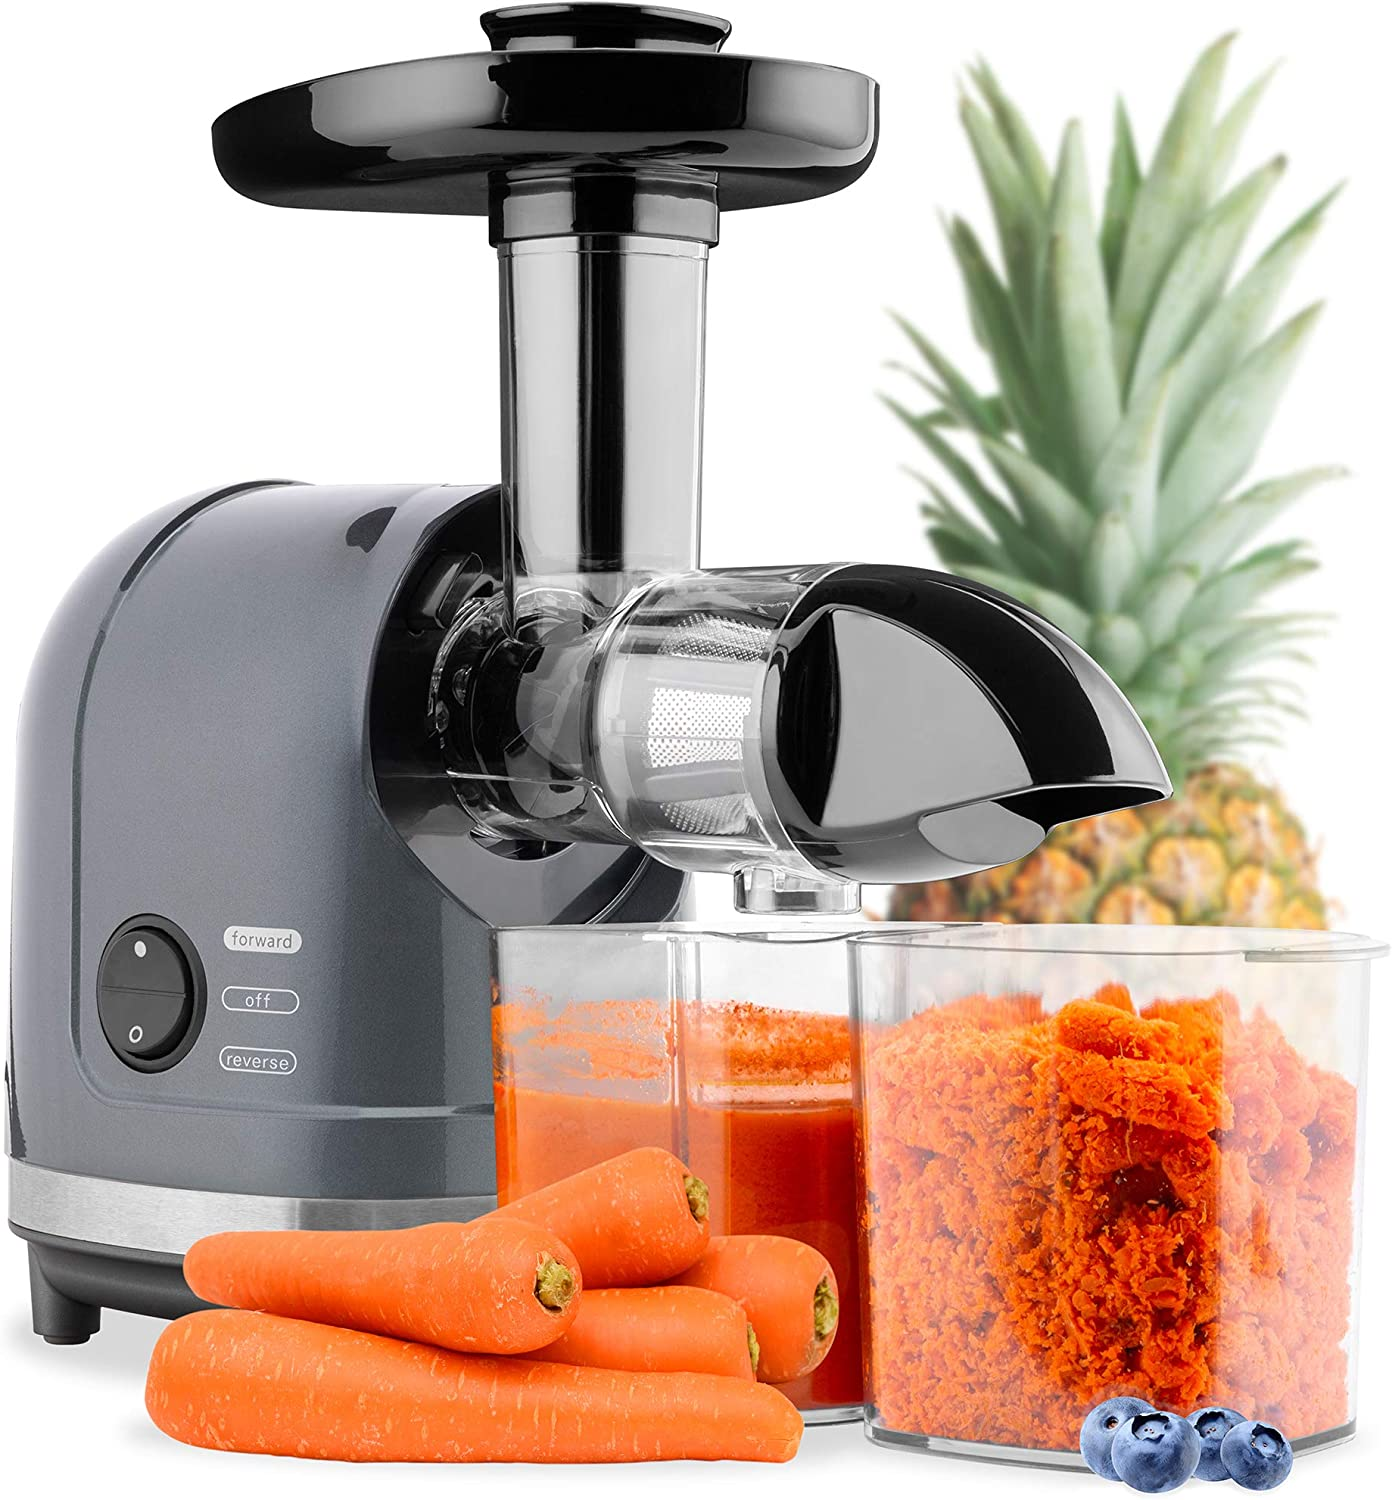 Best Choice Products 150W Horizontal Slow Masticating Juicer, Cold Press Extractor, High Nutrient Yield Juicing for Fruits & Vegetables w/Safety Lock, Reverse Mode, Quiet Motor, Cleaning Brush